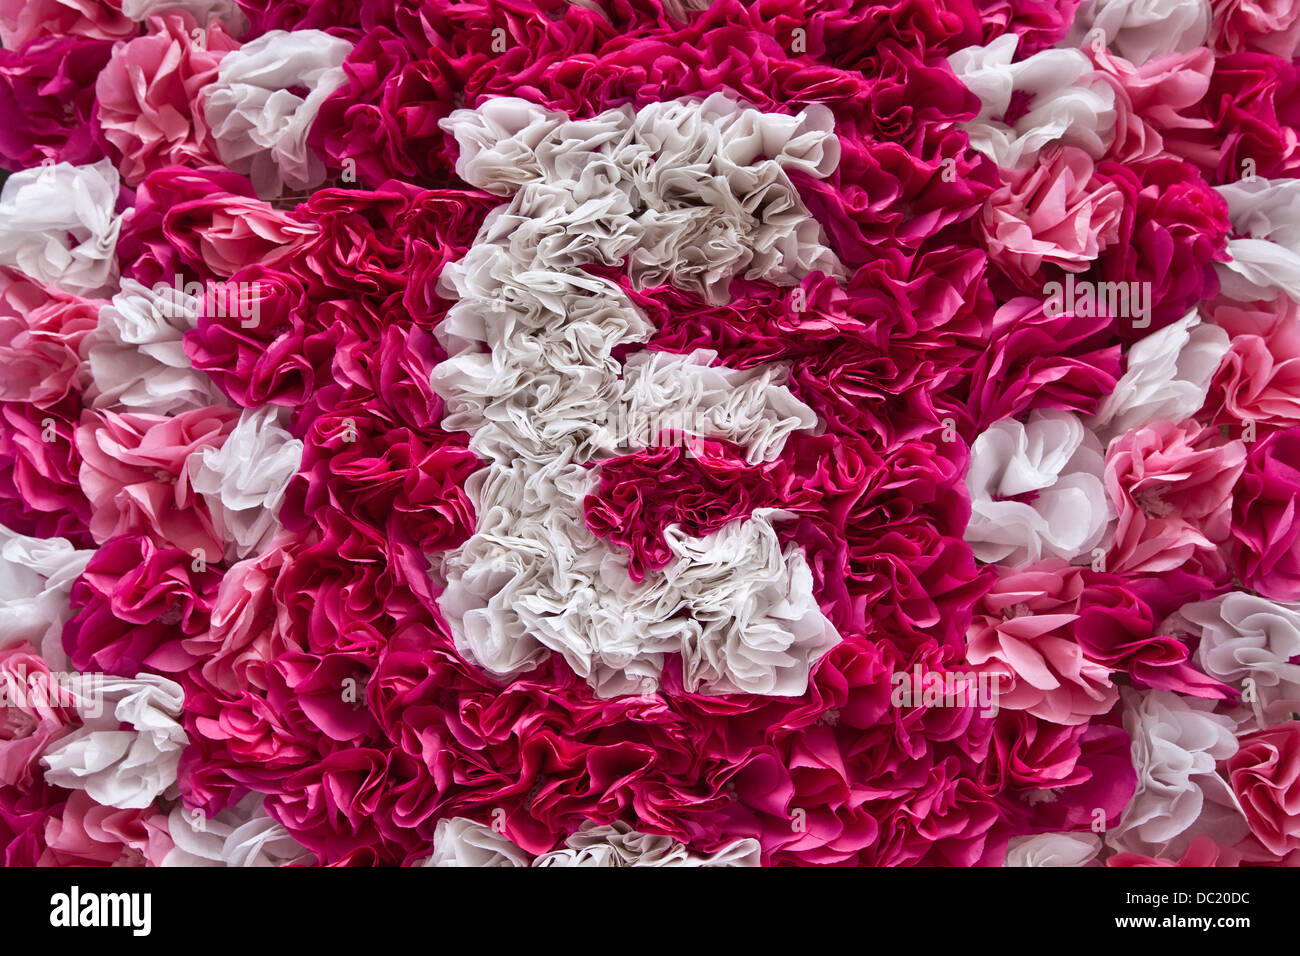 Europe Portugal Tomar A Close Up Photo Of The Paper Flowers That